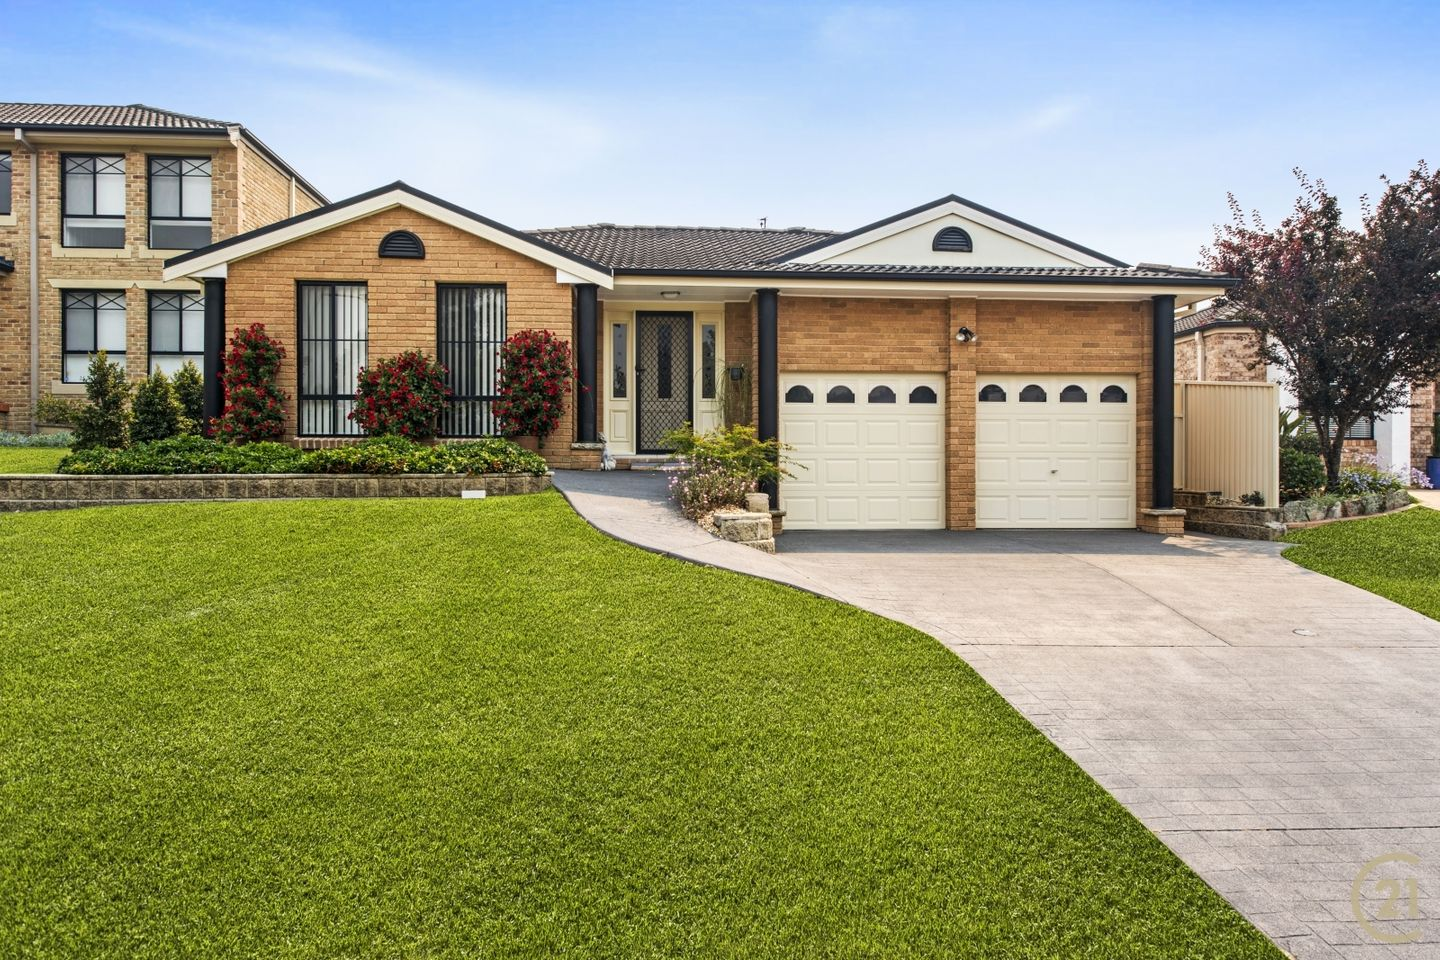 60 Bannister Drive, Erina NSW 2250 - House For Lease on Outdoor Living Erina id=21932